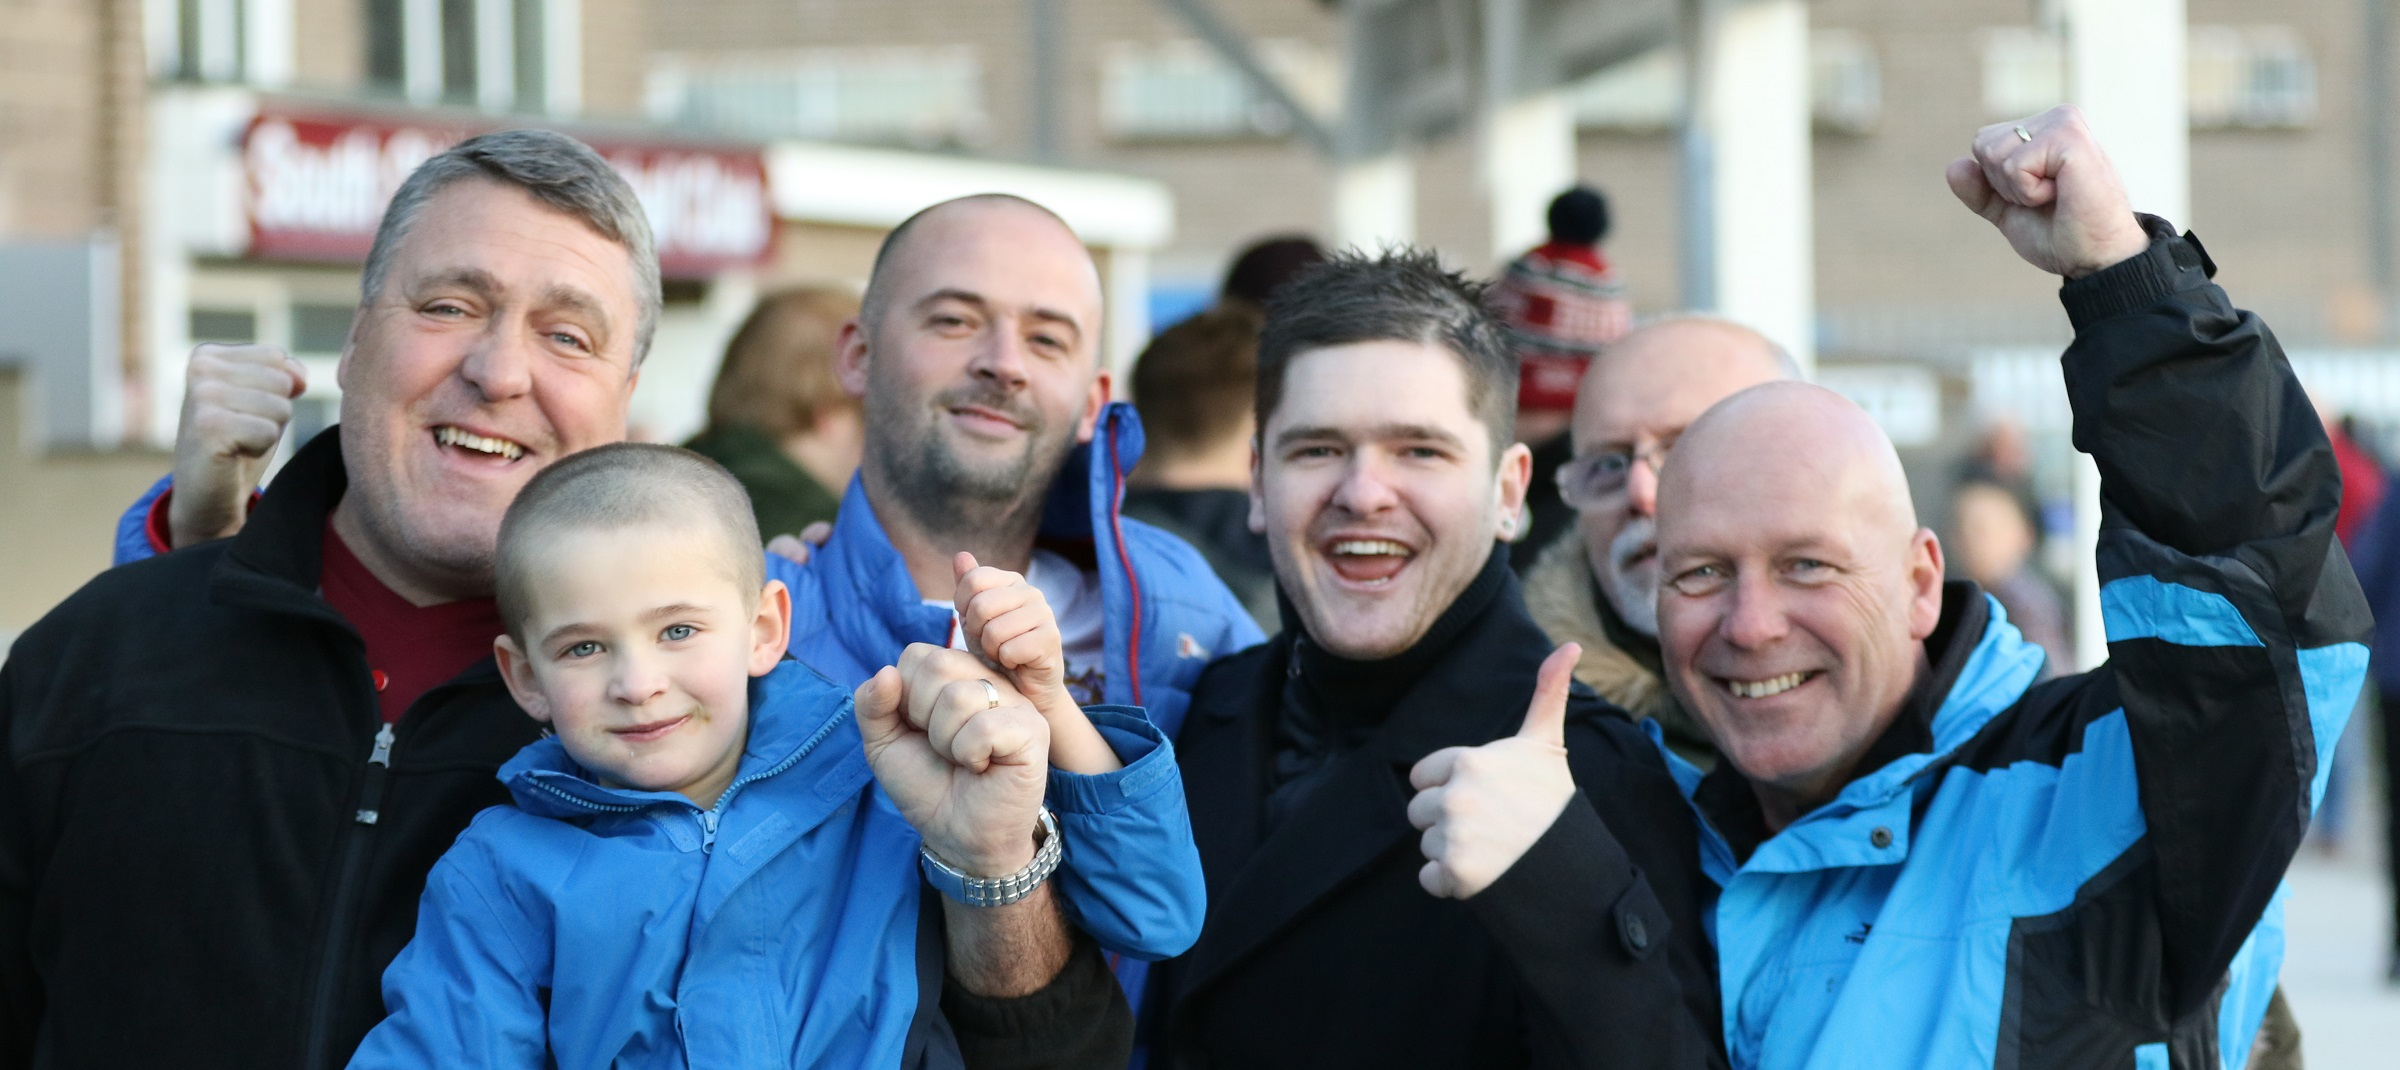 SSFC Members' Club launched – join now for just £5